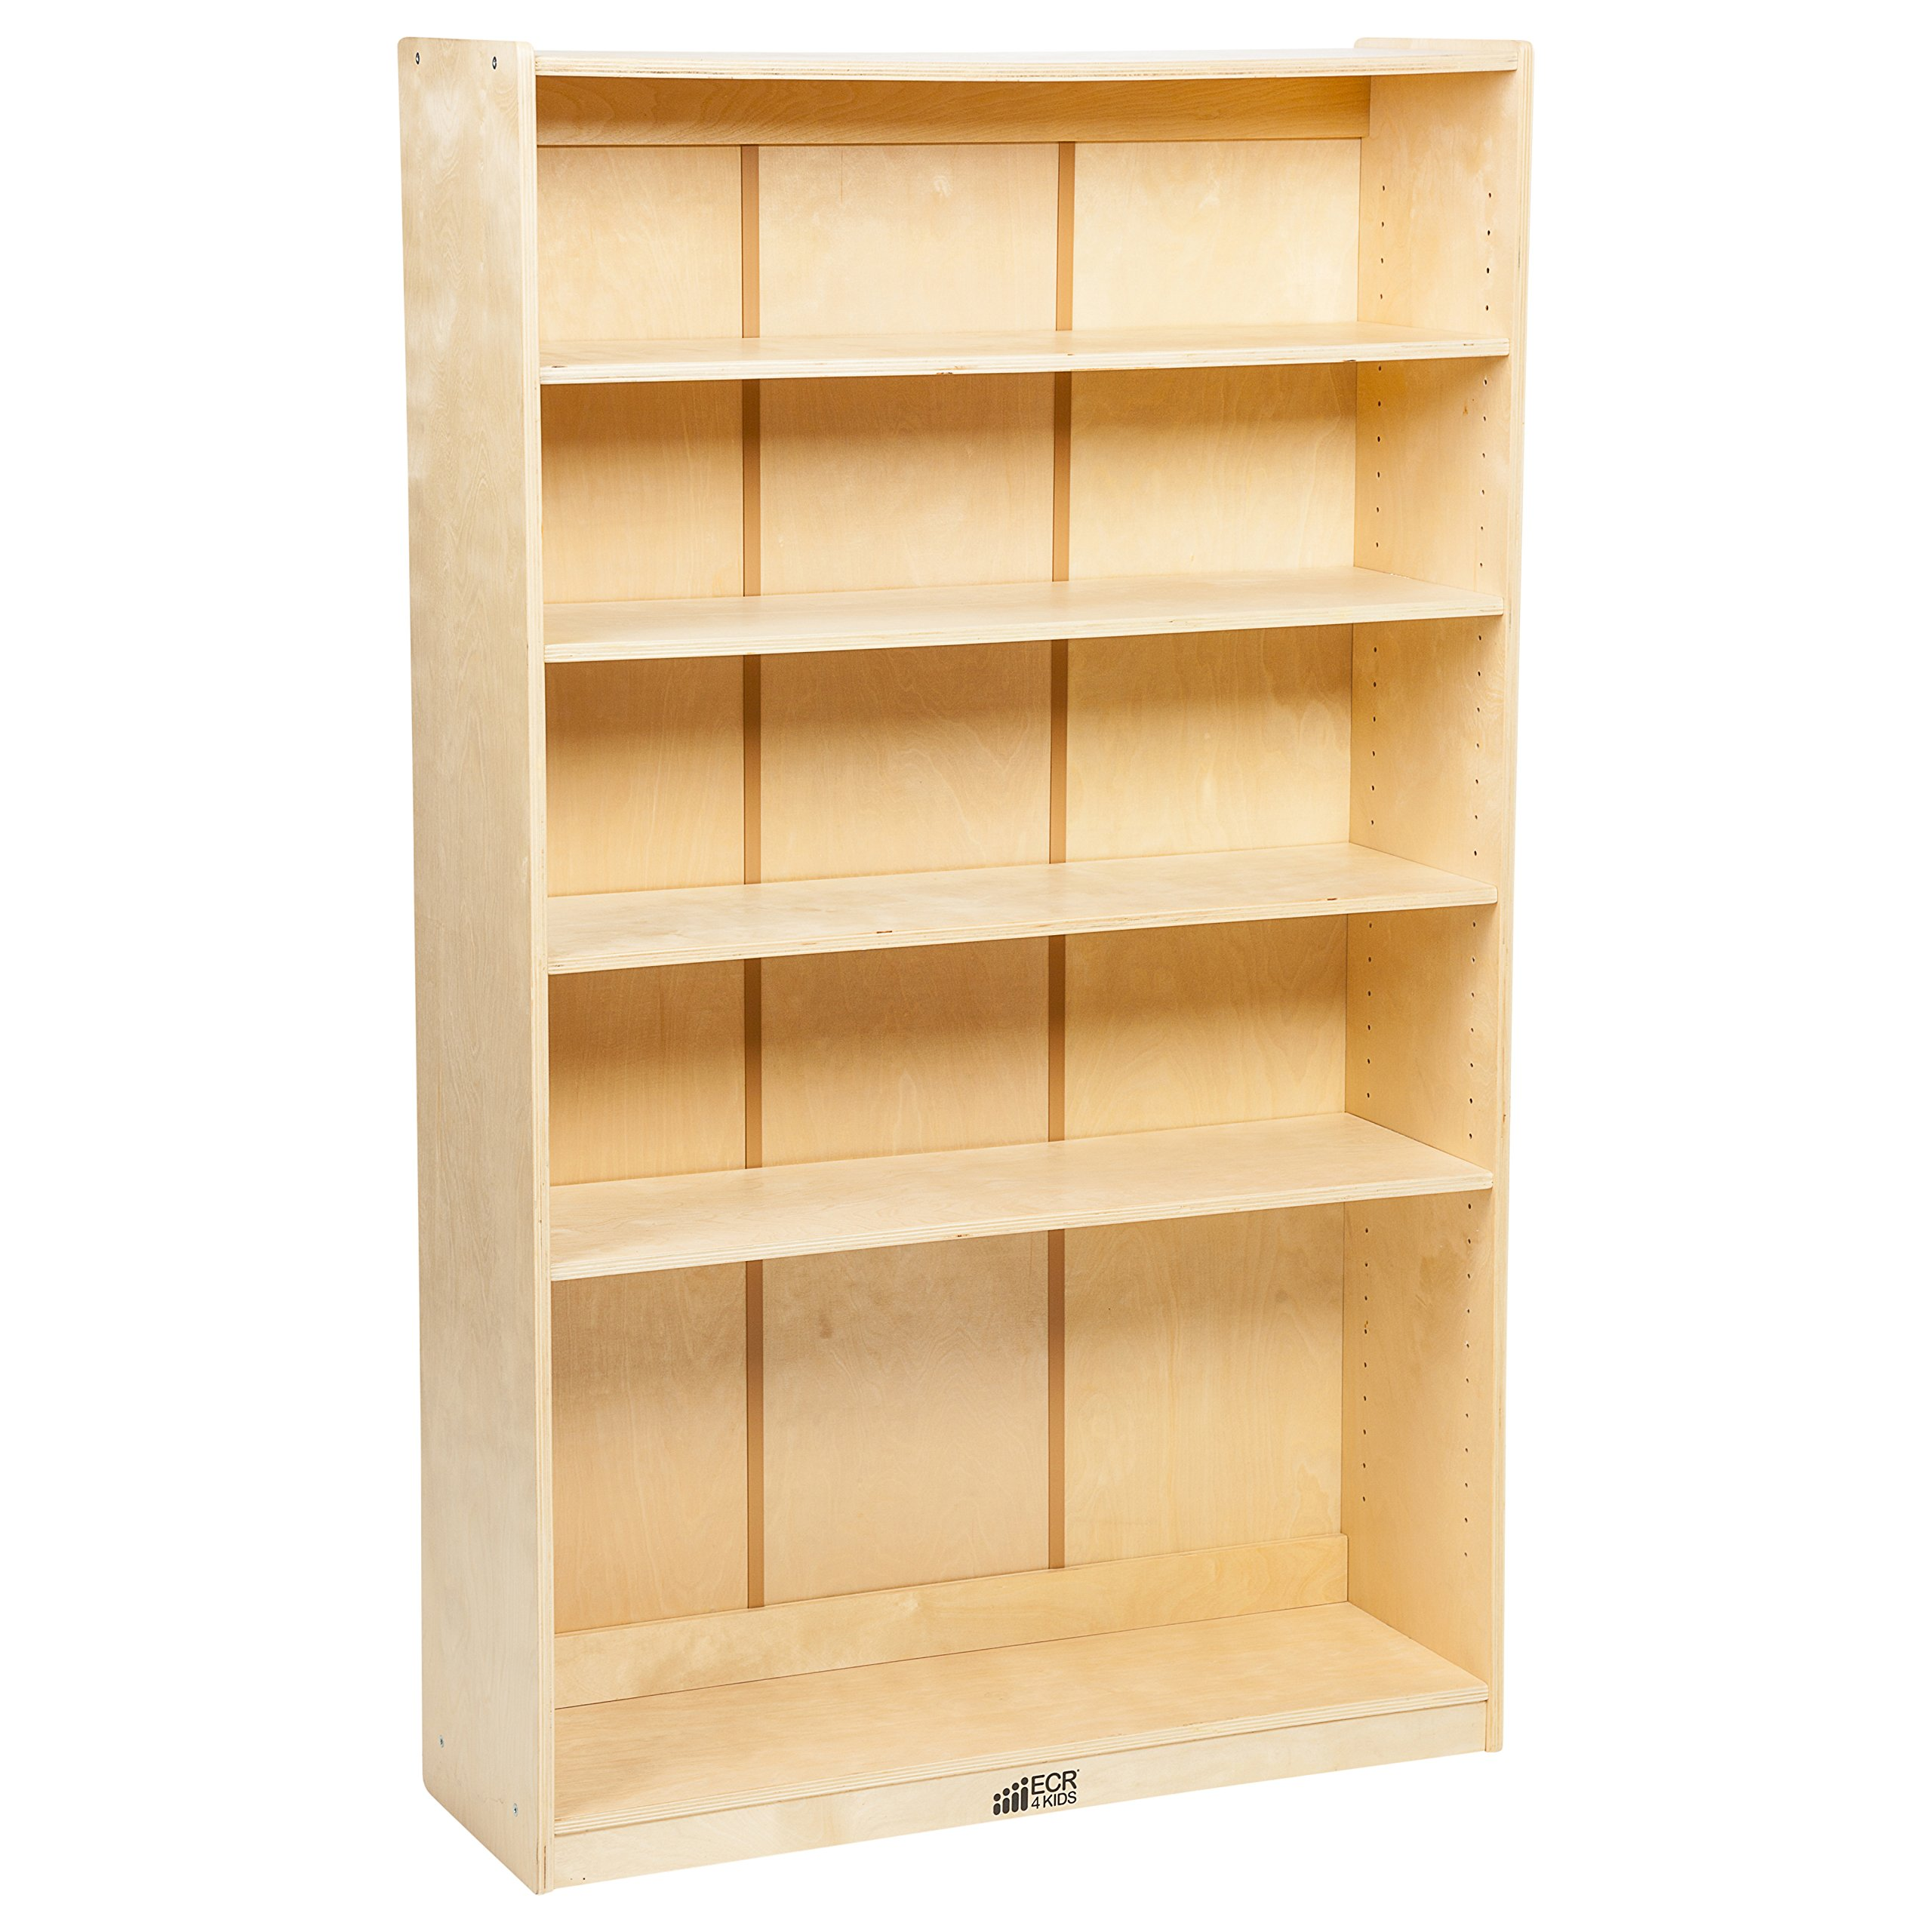 ECR4Kids Birch Hardwood School Bookcase, Adjustable Shelves, Natural, 60'' H